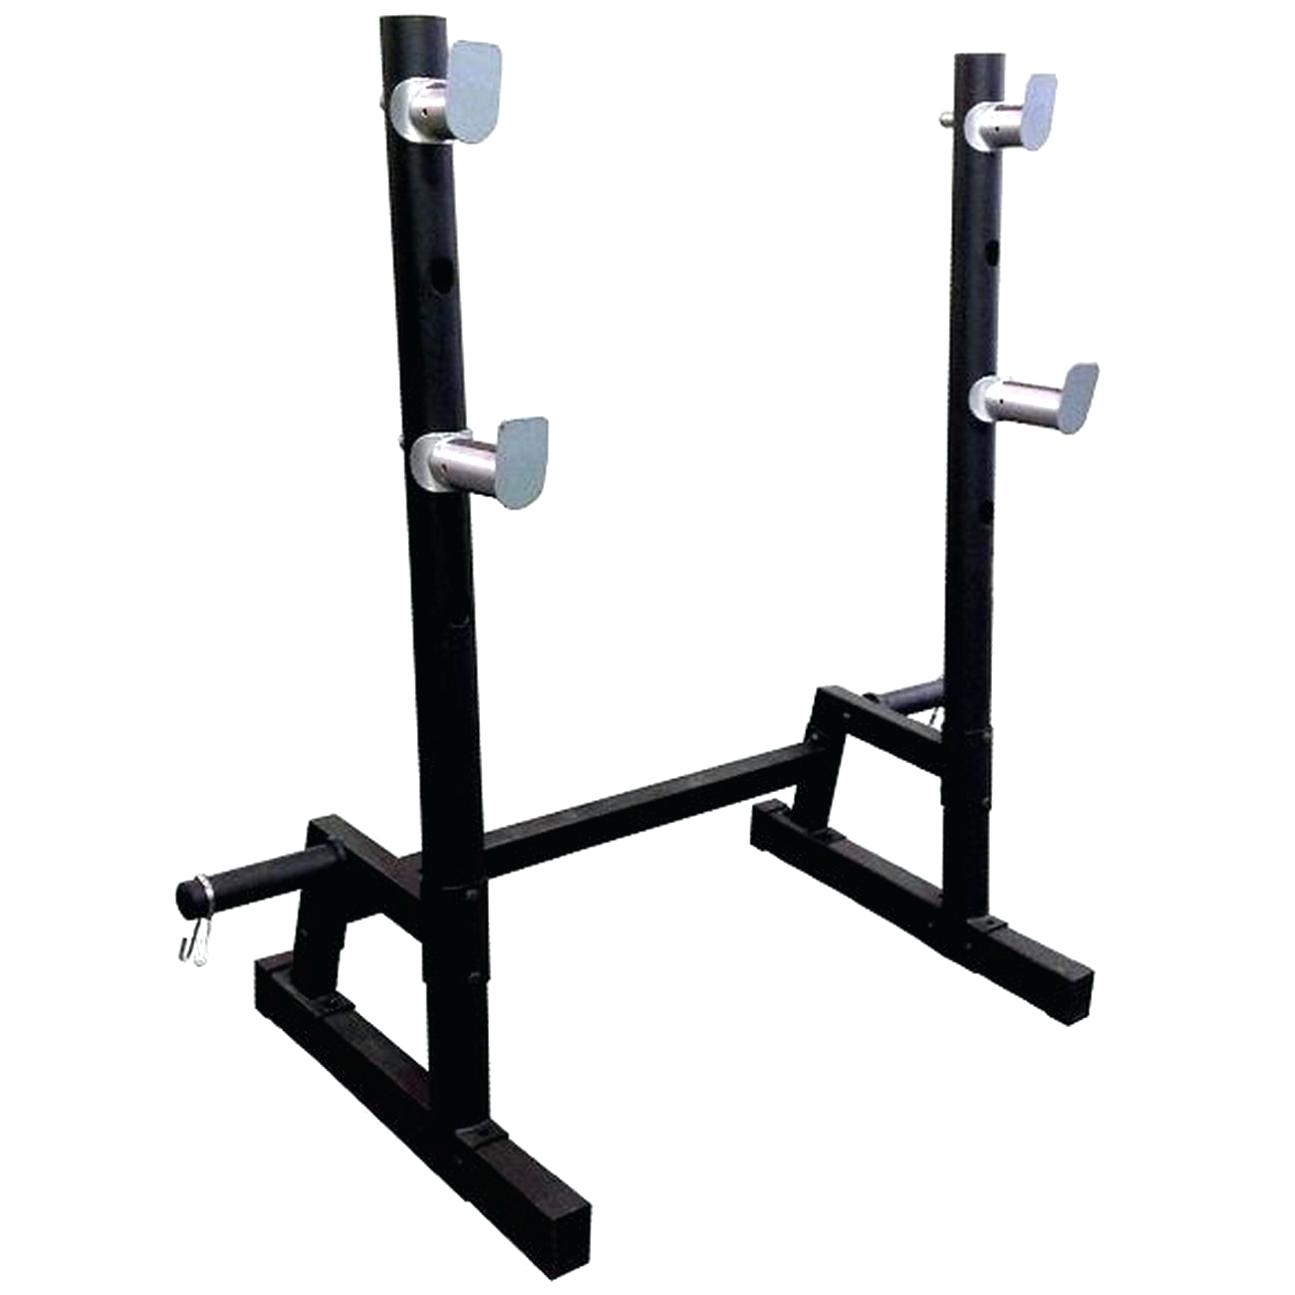 Squat Rack | Squat Racj | Squat Rack for Sale